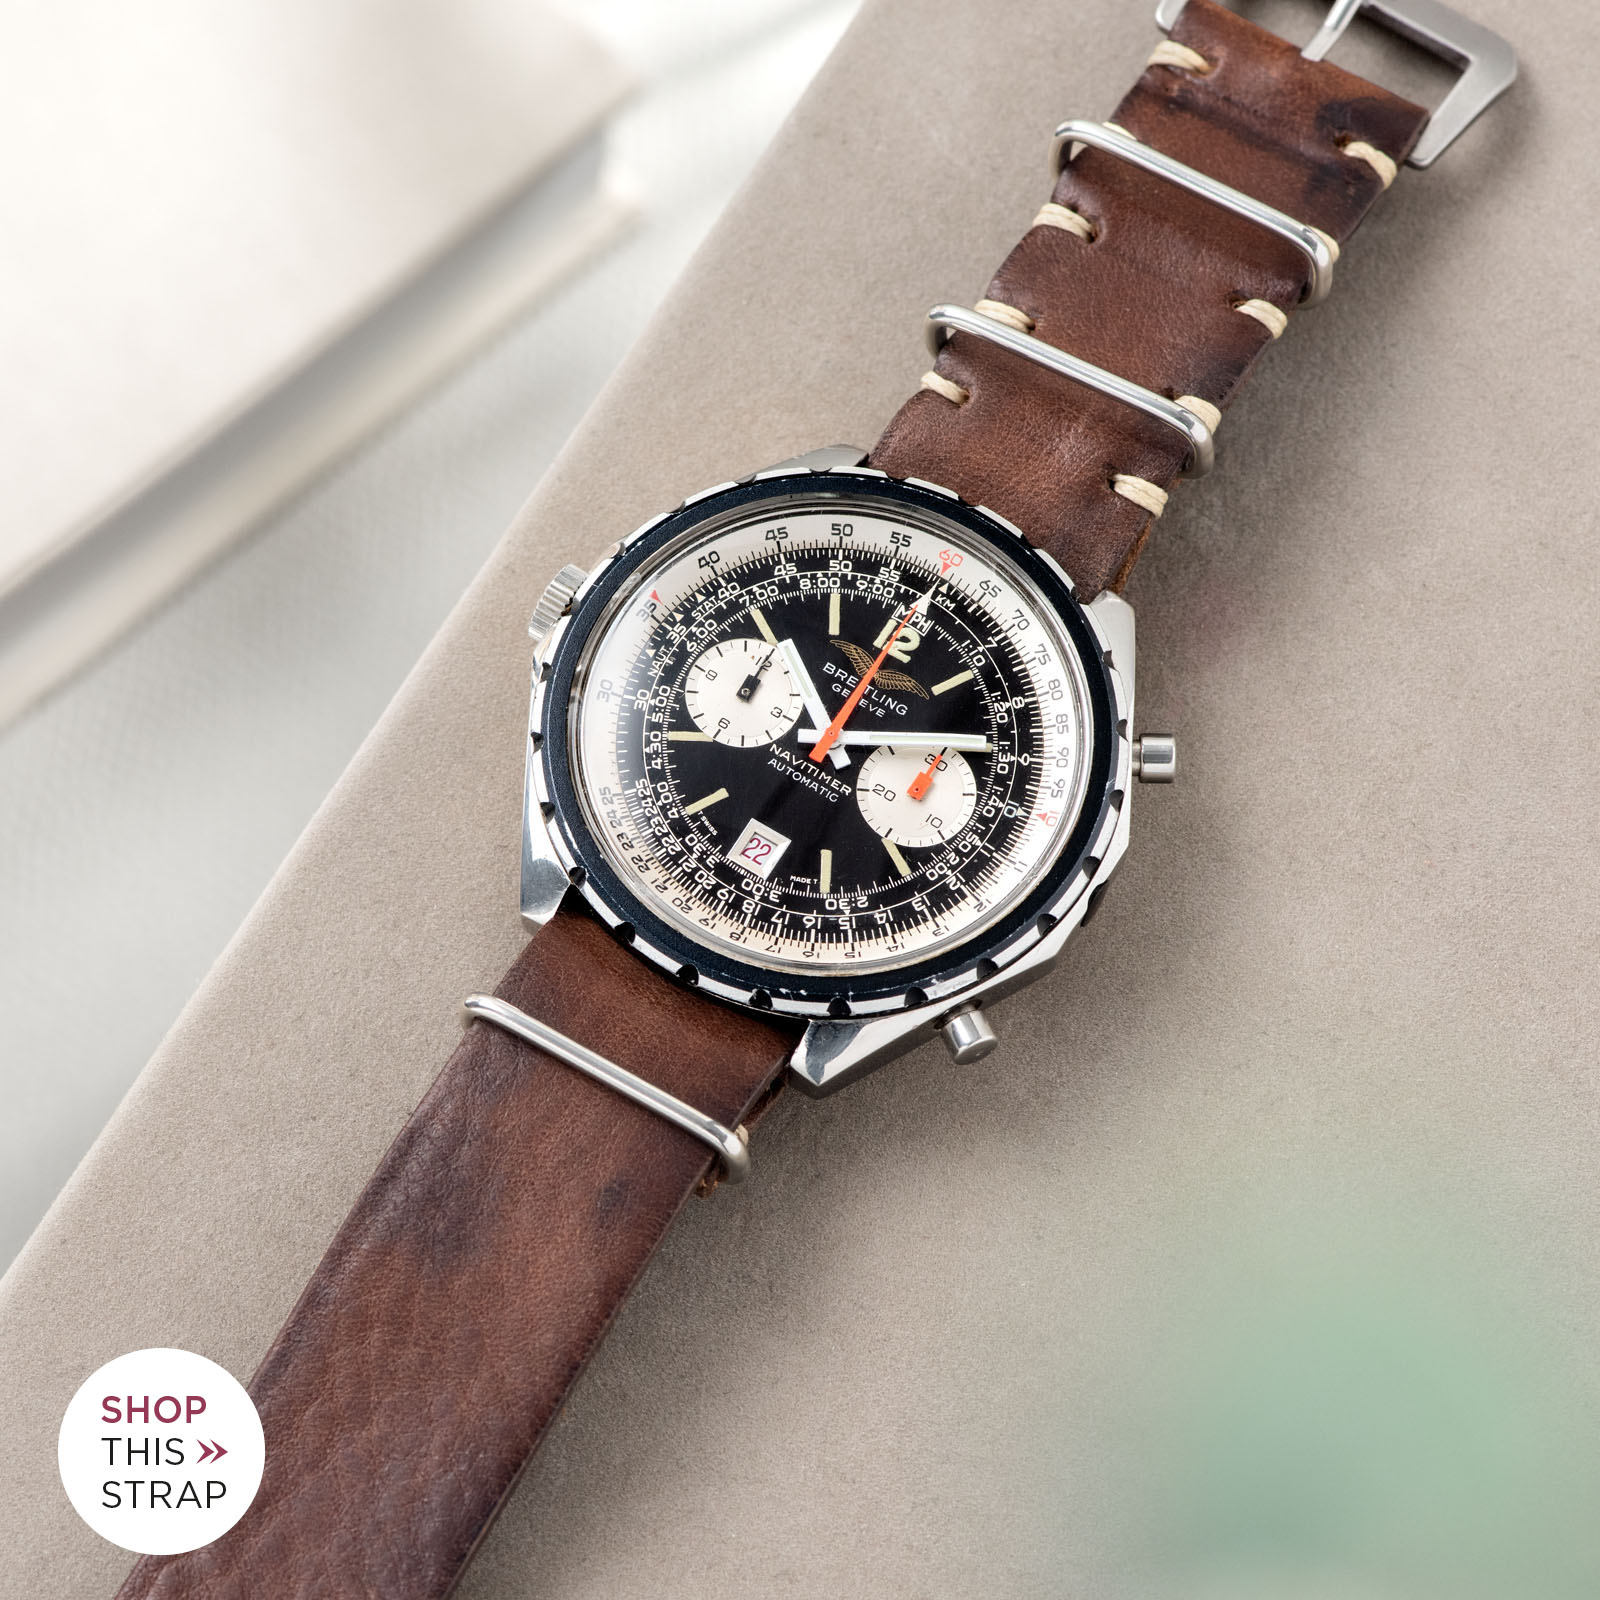 Bulang and Sons_Strapguide_Breitling Navitimer ref issued to iraqi air force ref 1806_Lumberjack Brown Nato Leather Watch Strap_001